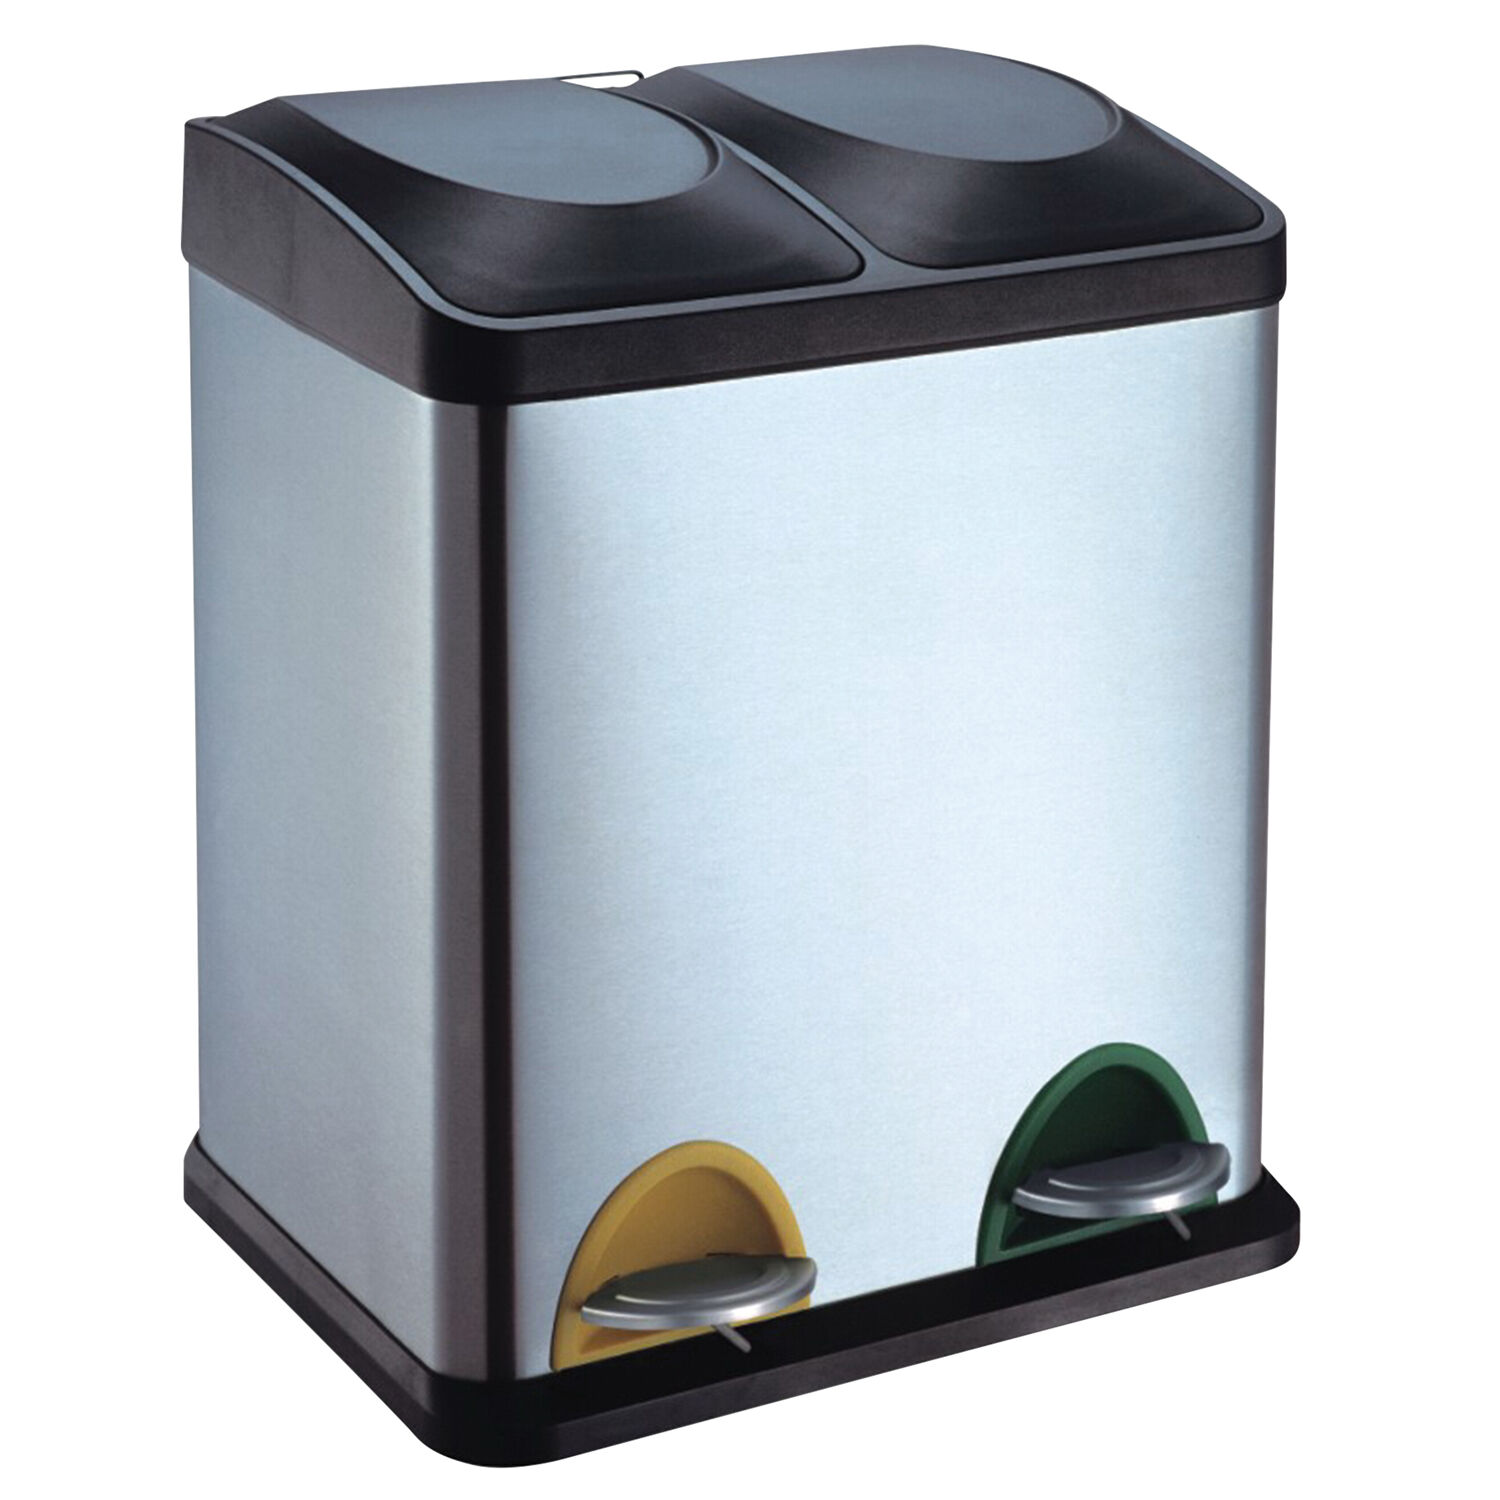 Incroyable Double Recycling Bin 30 Litre